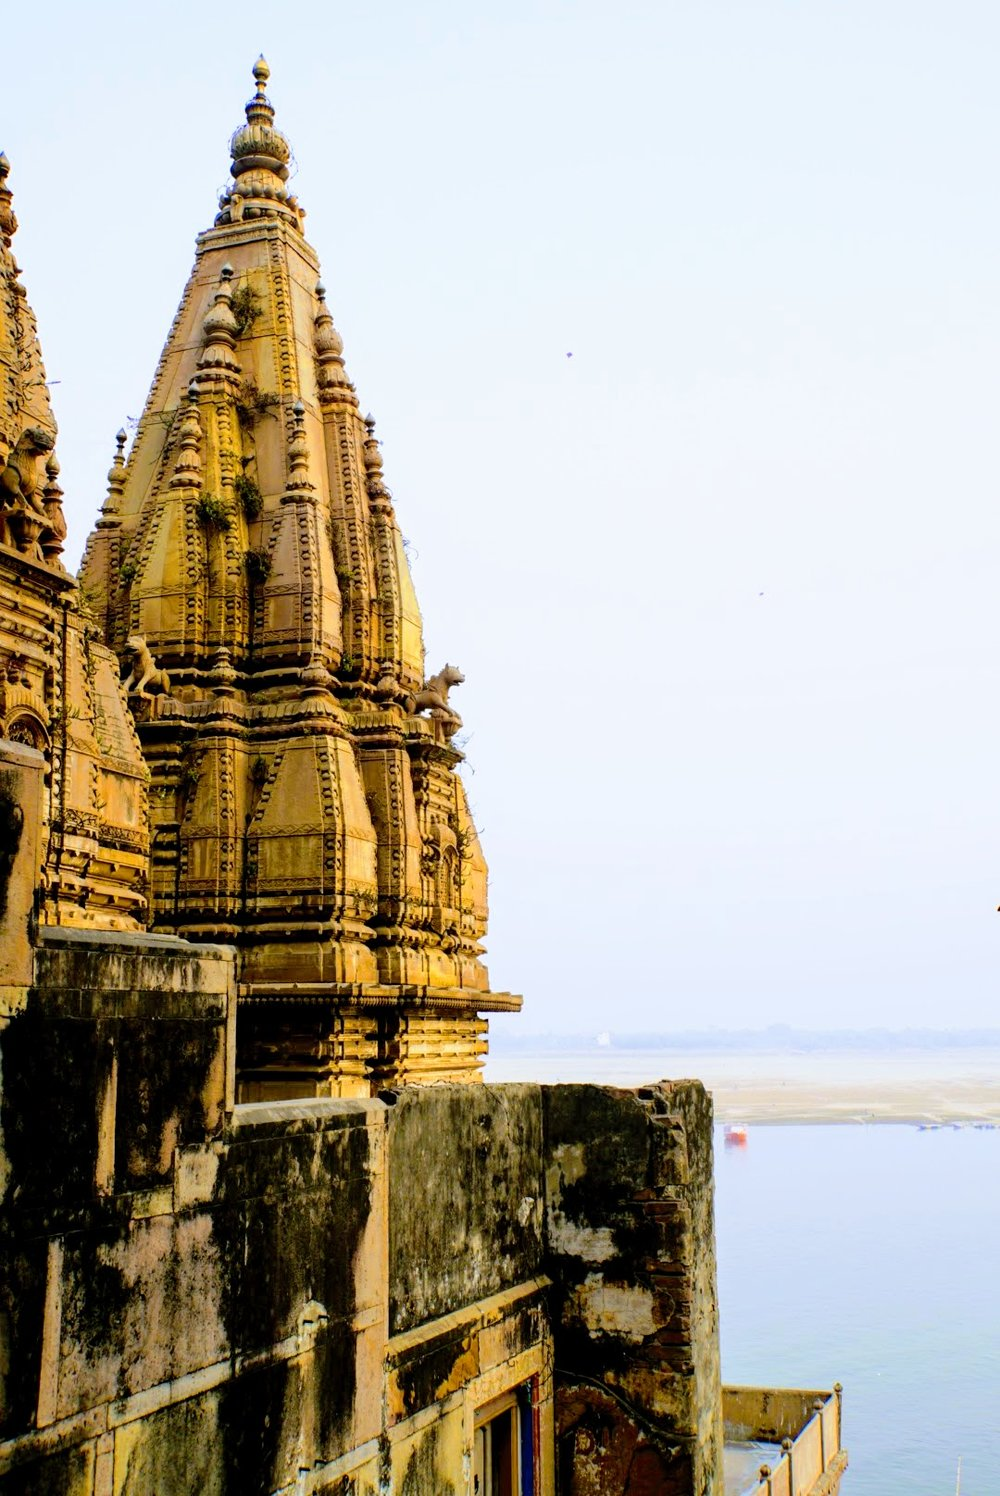 A temple rising above the ghats along the Ganges in Varanasi, India.